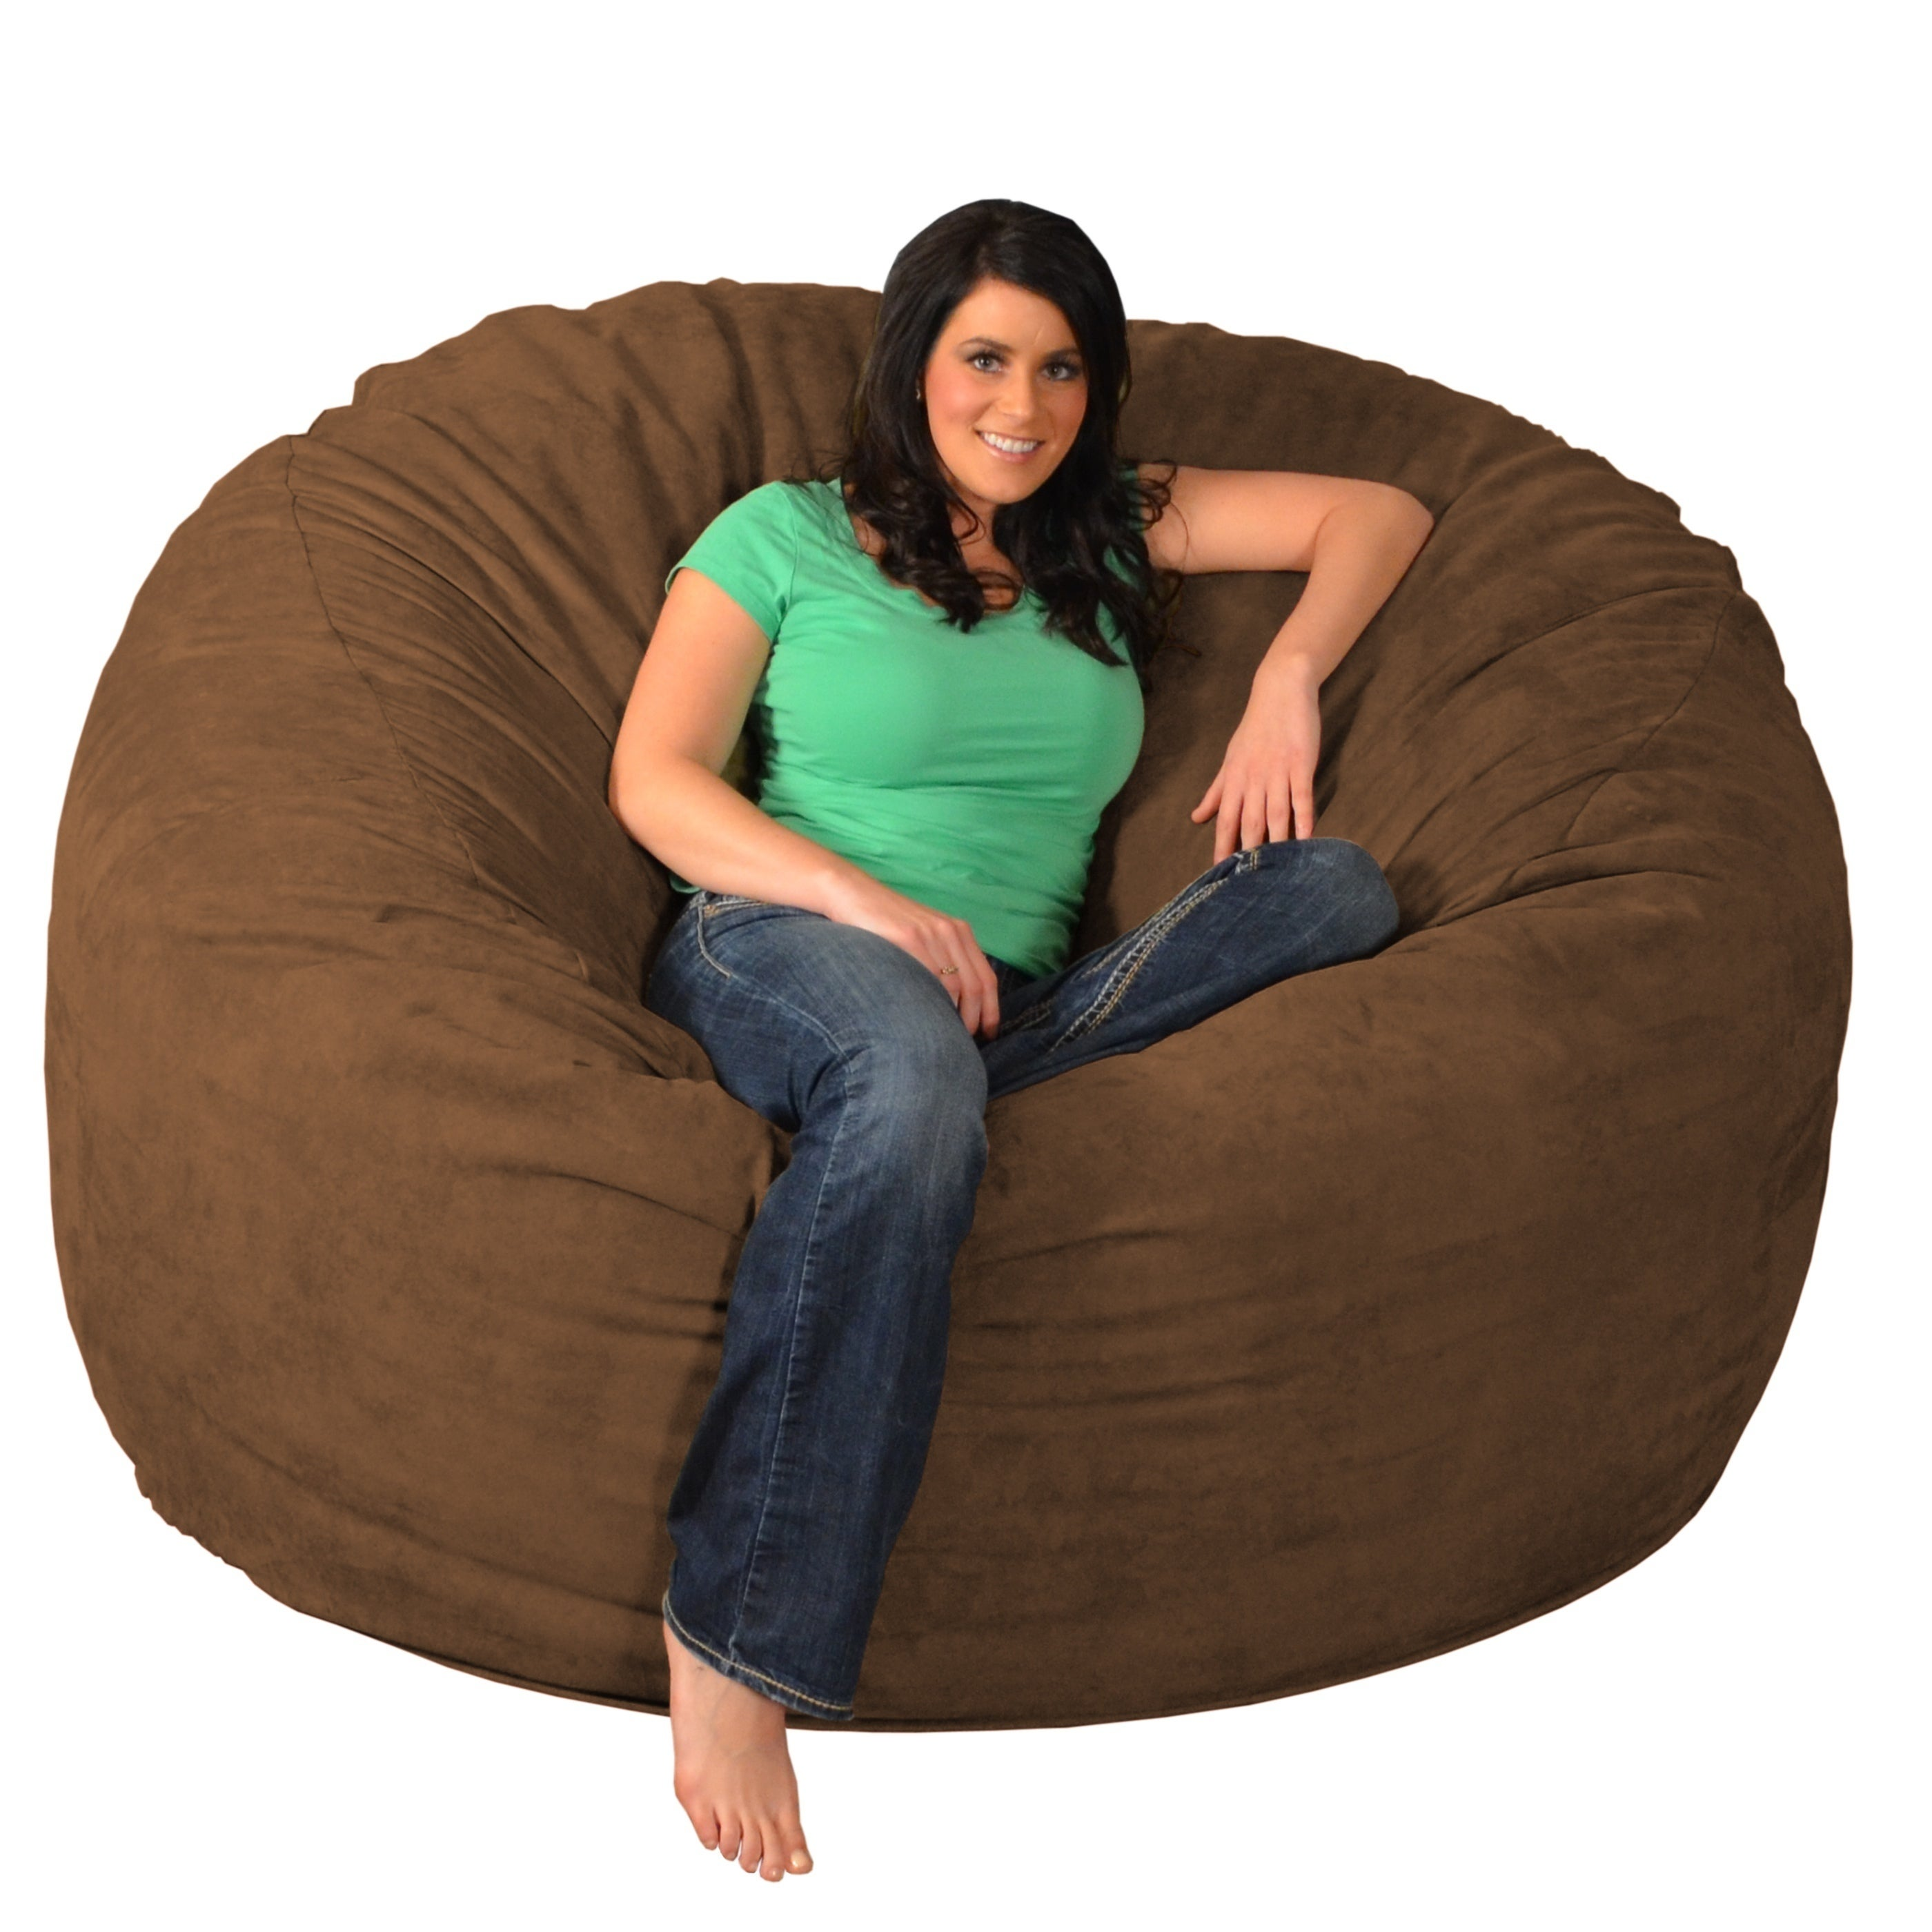 Giant Memory Foam Bean Bag 6 Foot Chair On Free Shipping Today 9936912